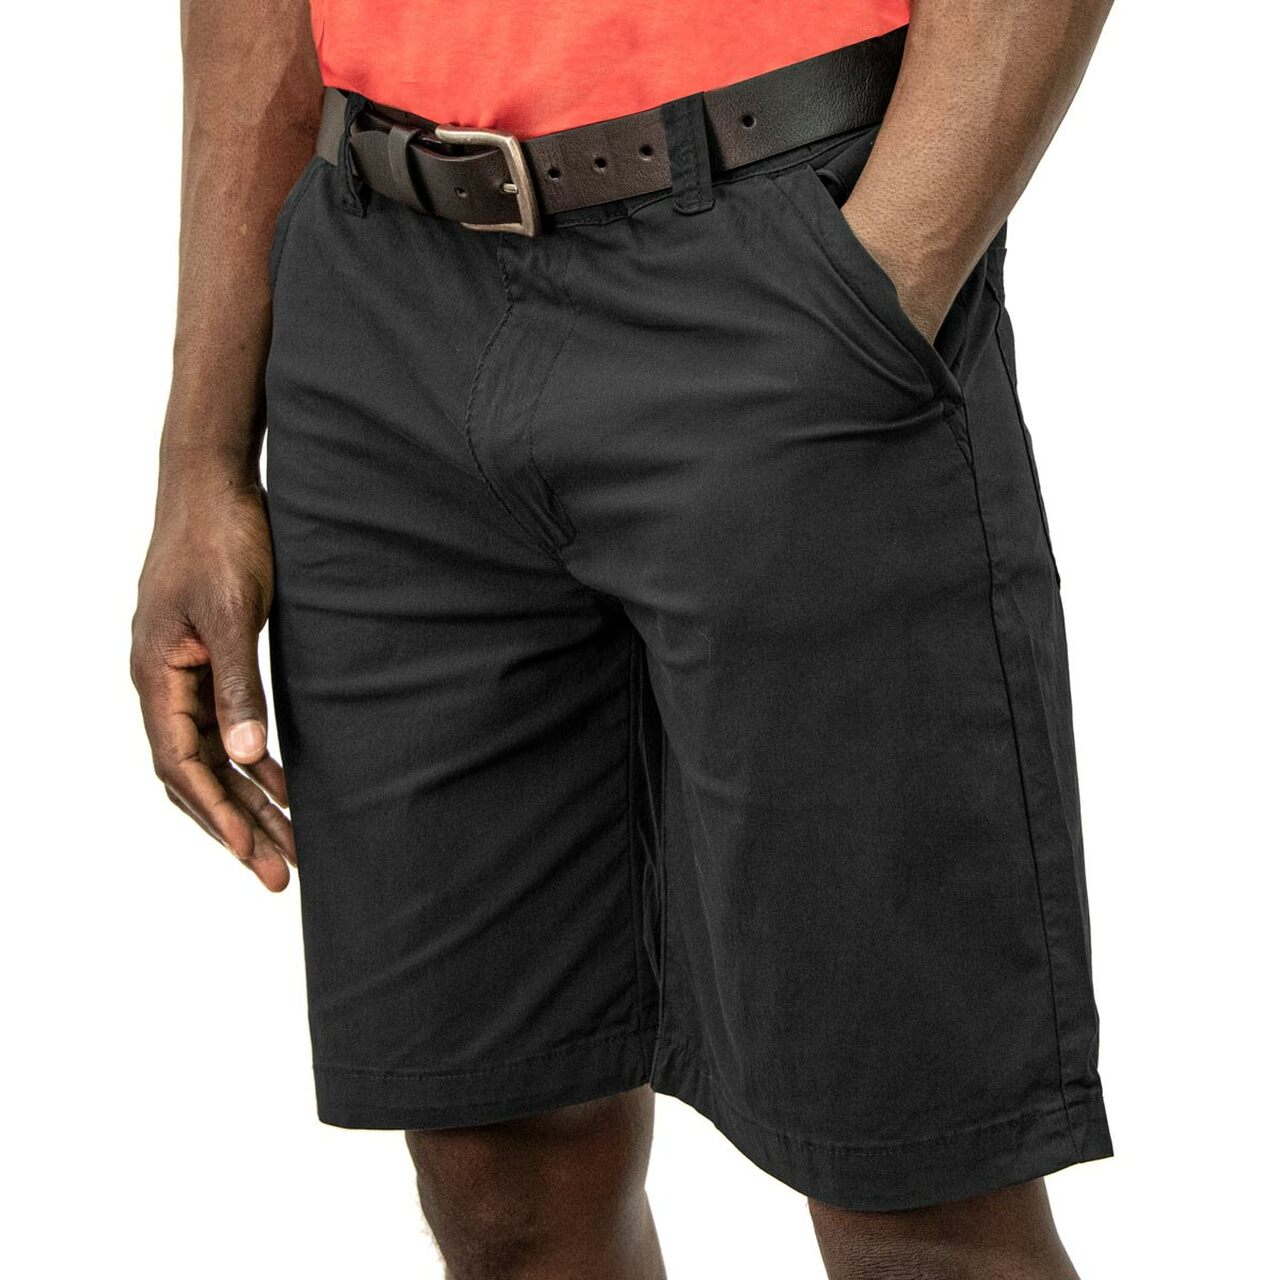 'KEY' Men's Adventure Short - Black